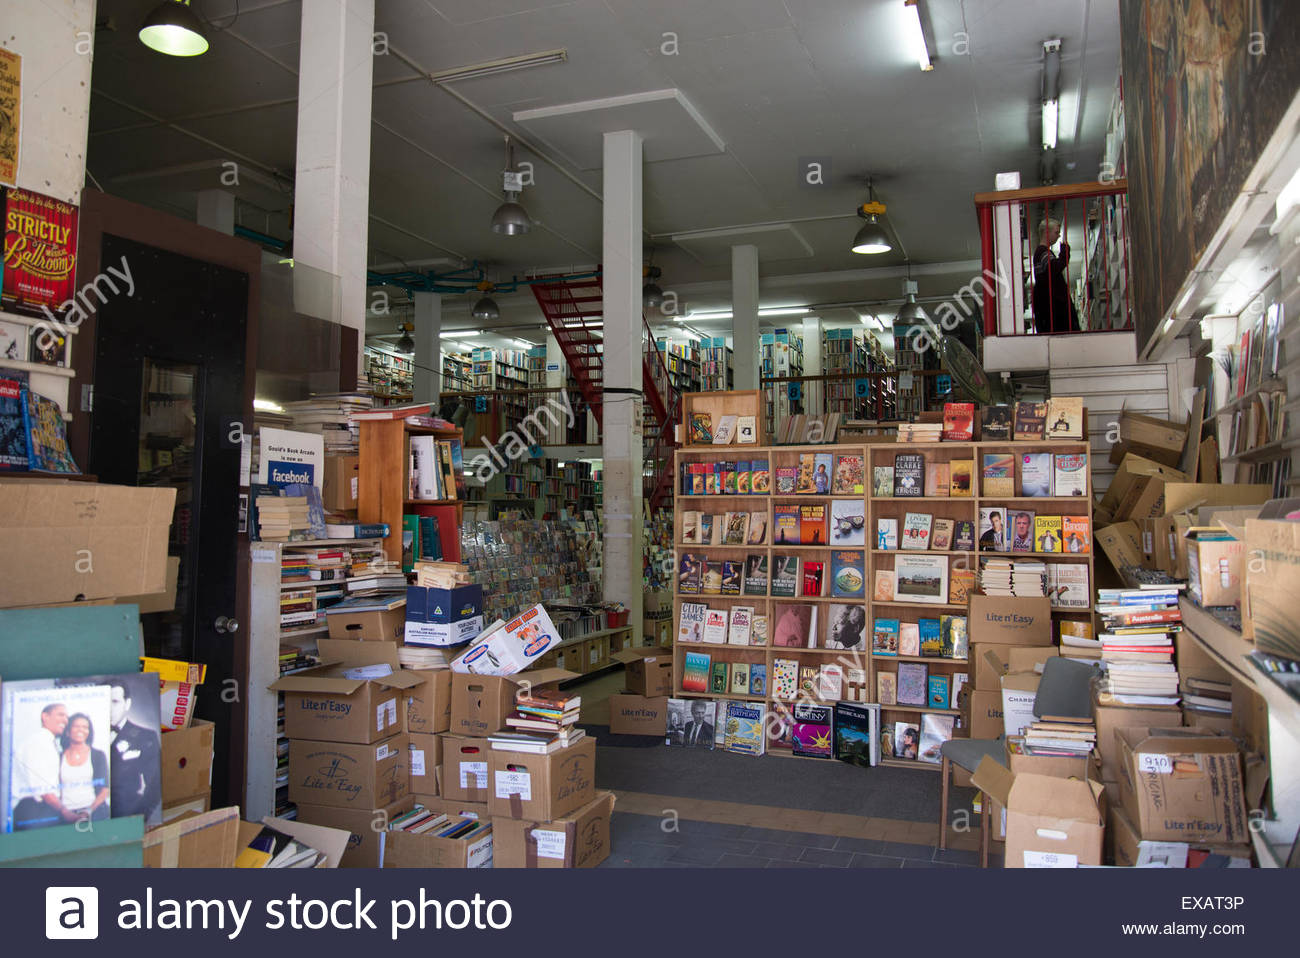 Goulds secondhand bookshop, King Street, Newtown, Sydney, Australia - Stock Image